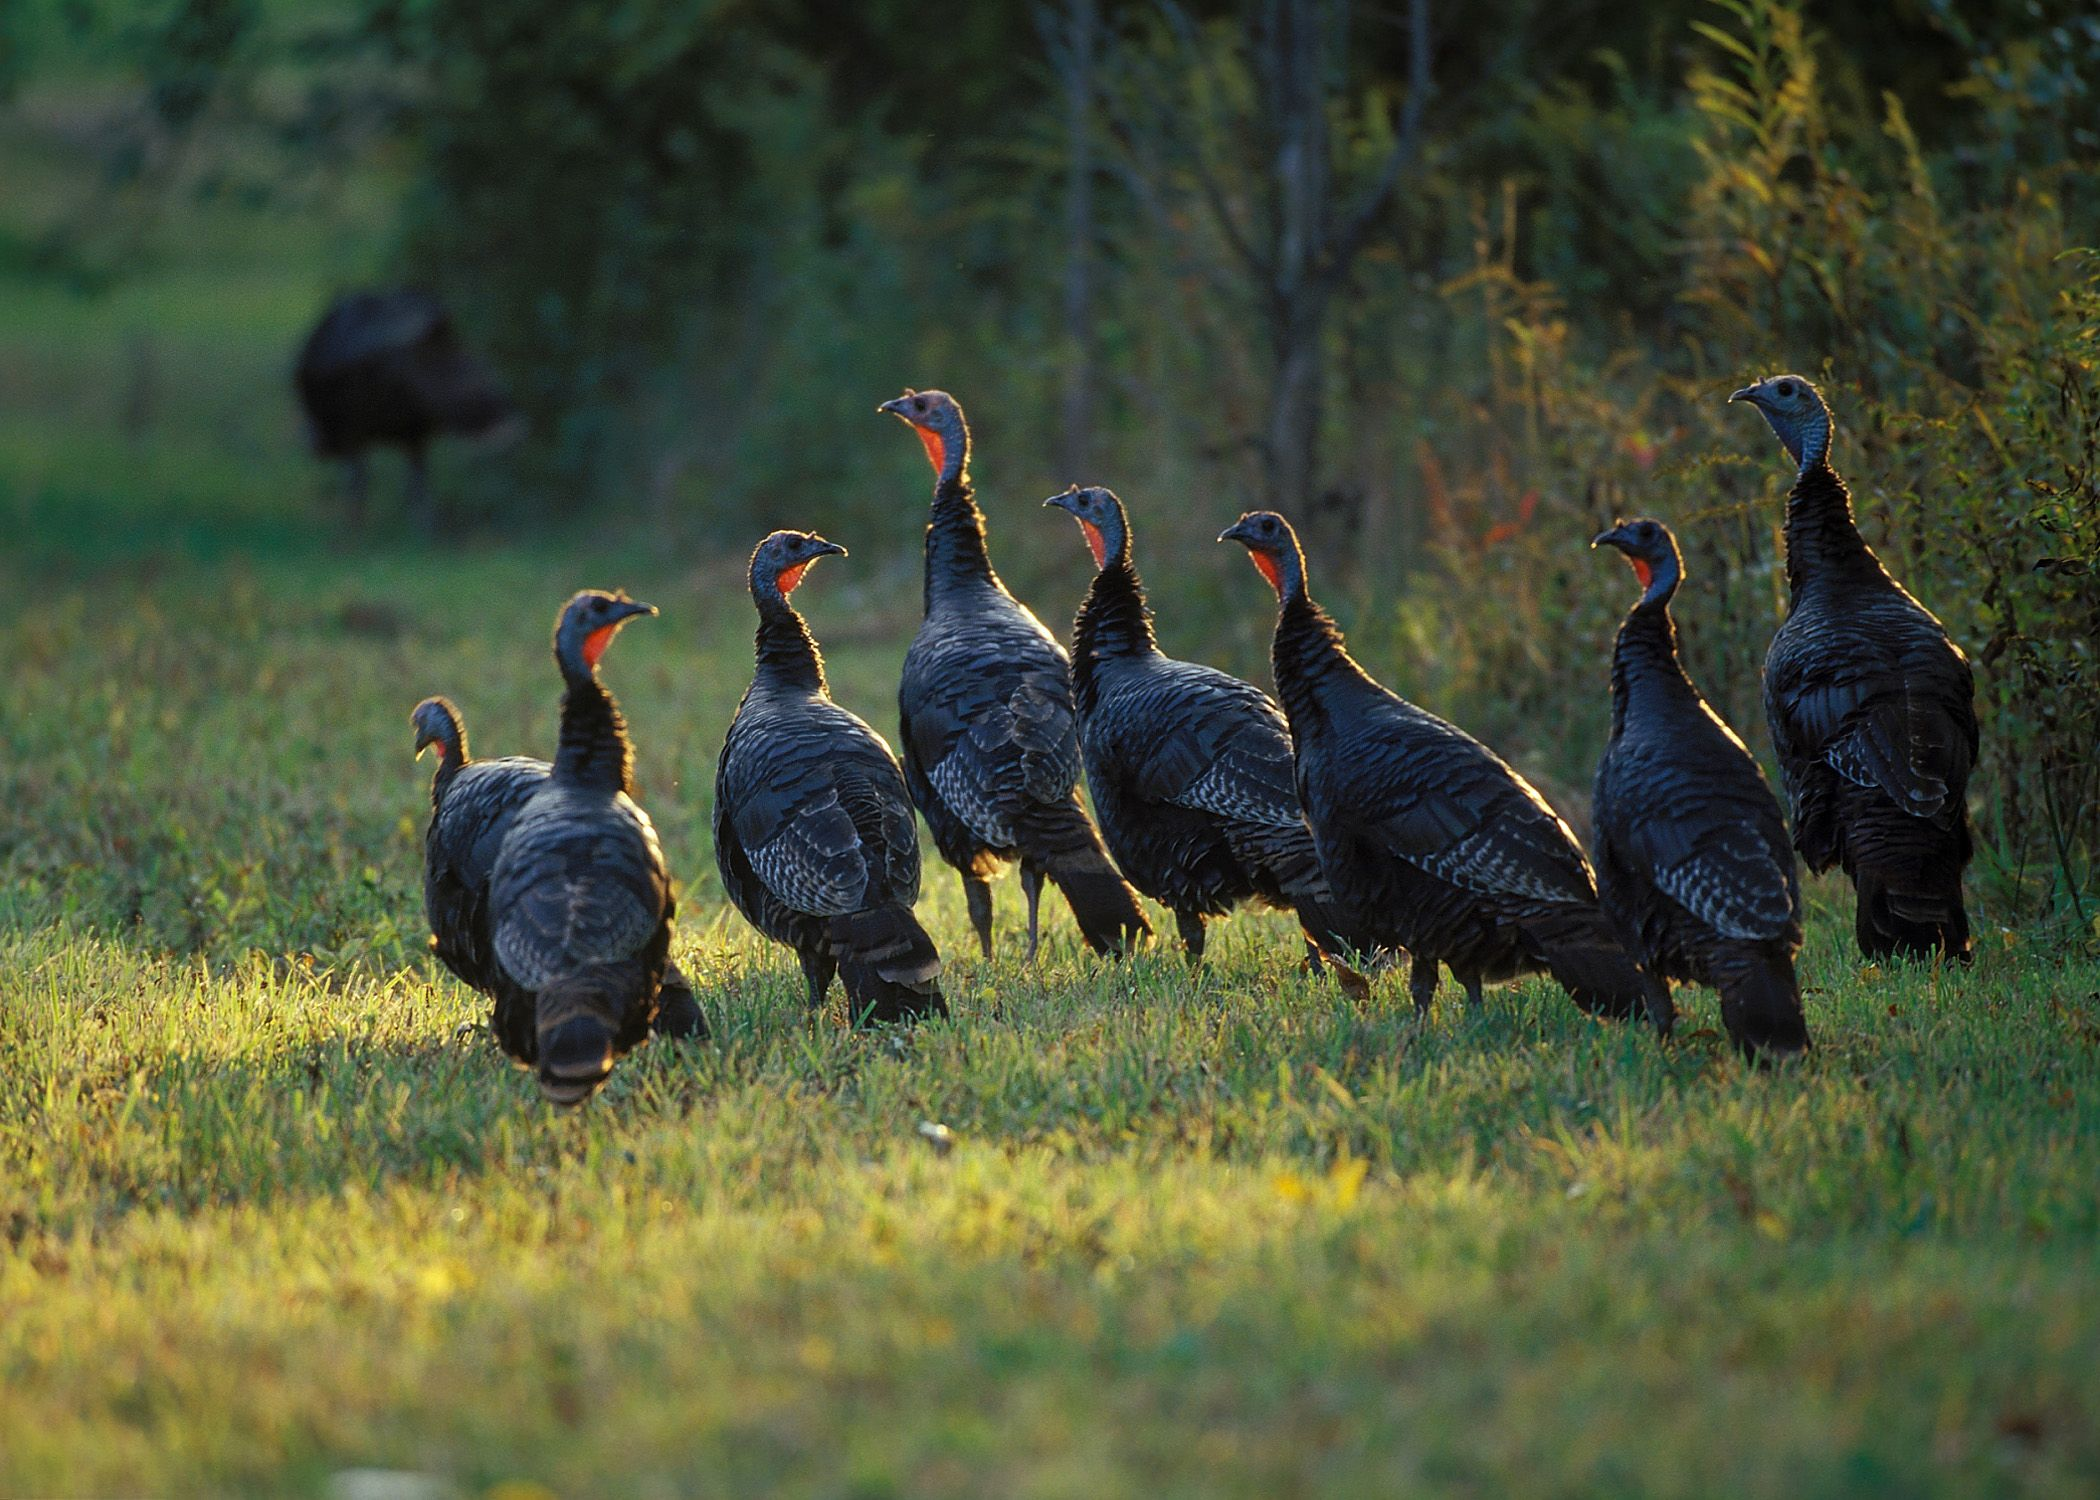 What is a good intro to a term paper on the national wild turkey federation?